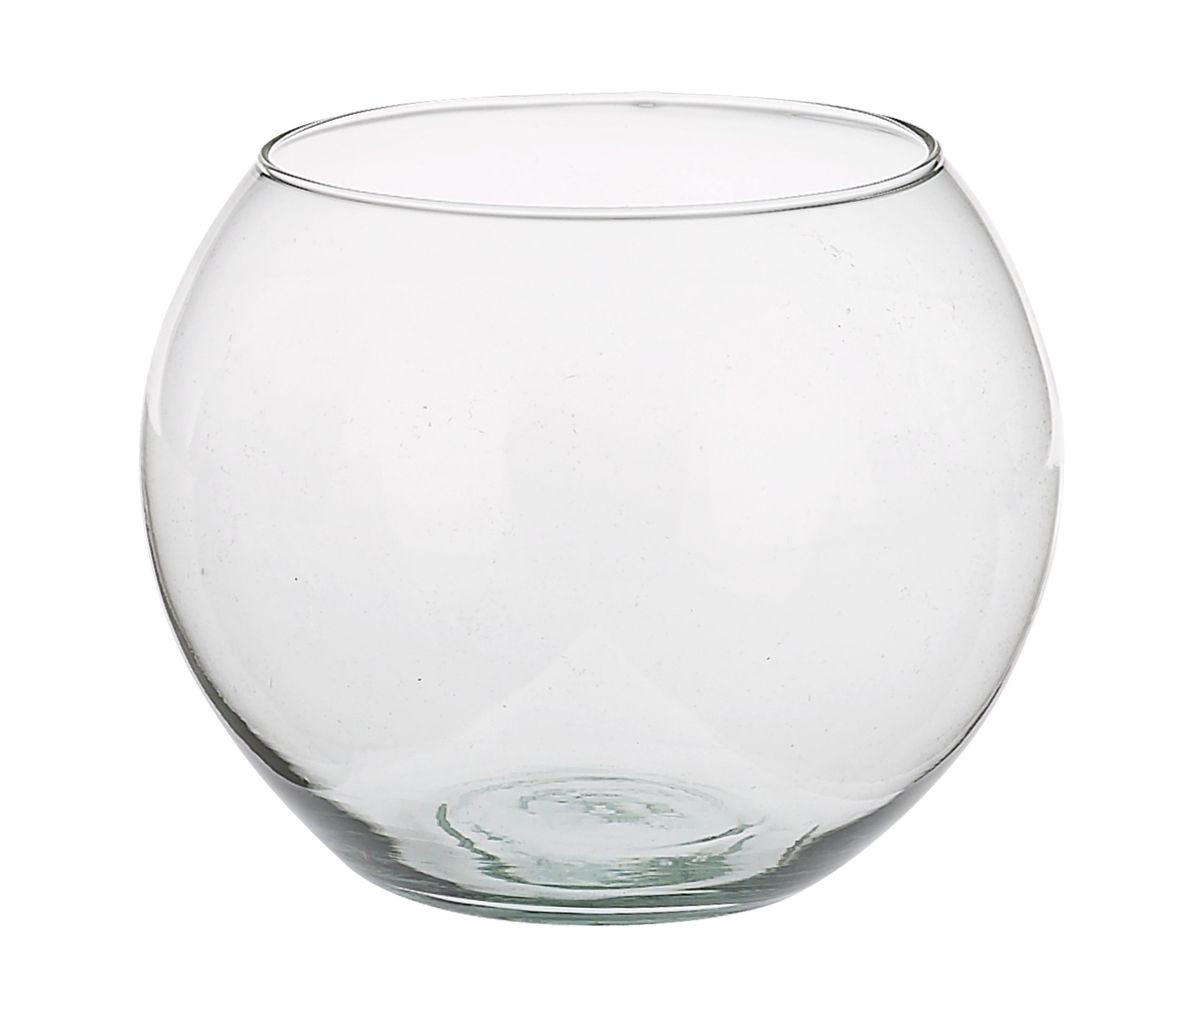 23 attractive Eastland Glass Cylinder Vases Set Of 4 2021 free download eastland glass cylinder vases set of 4 of eastland bubble ball vase 5 5 m as wedding pinterest vase pertaining to bubble bowl vase recycled glass 6in